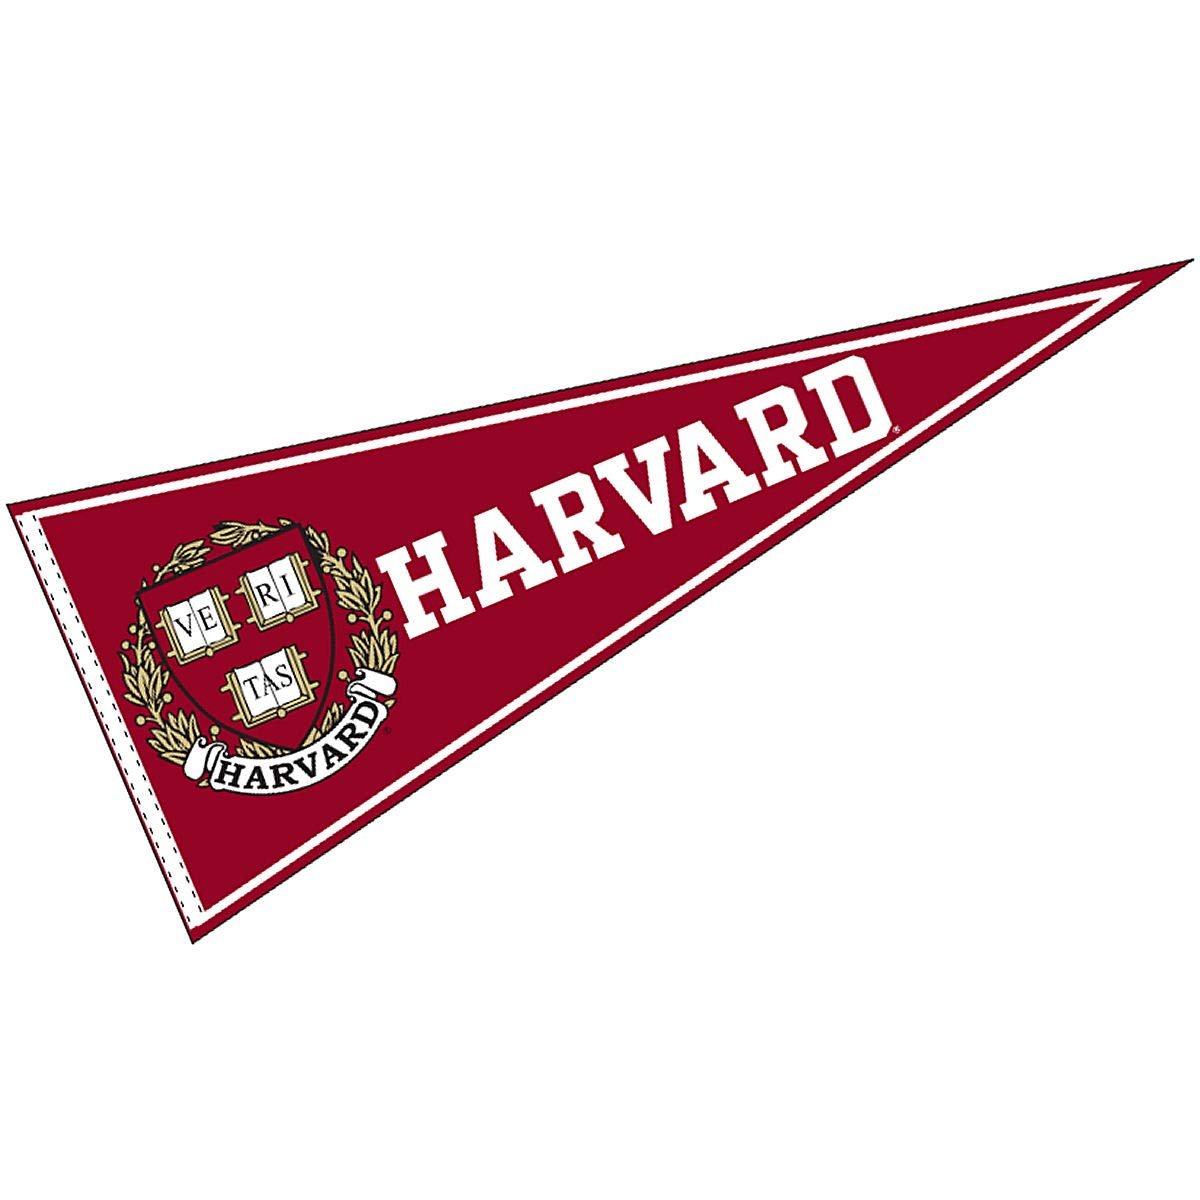 College Flags and Banners Co  Harvard Pennant Full Size Felt